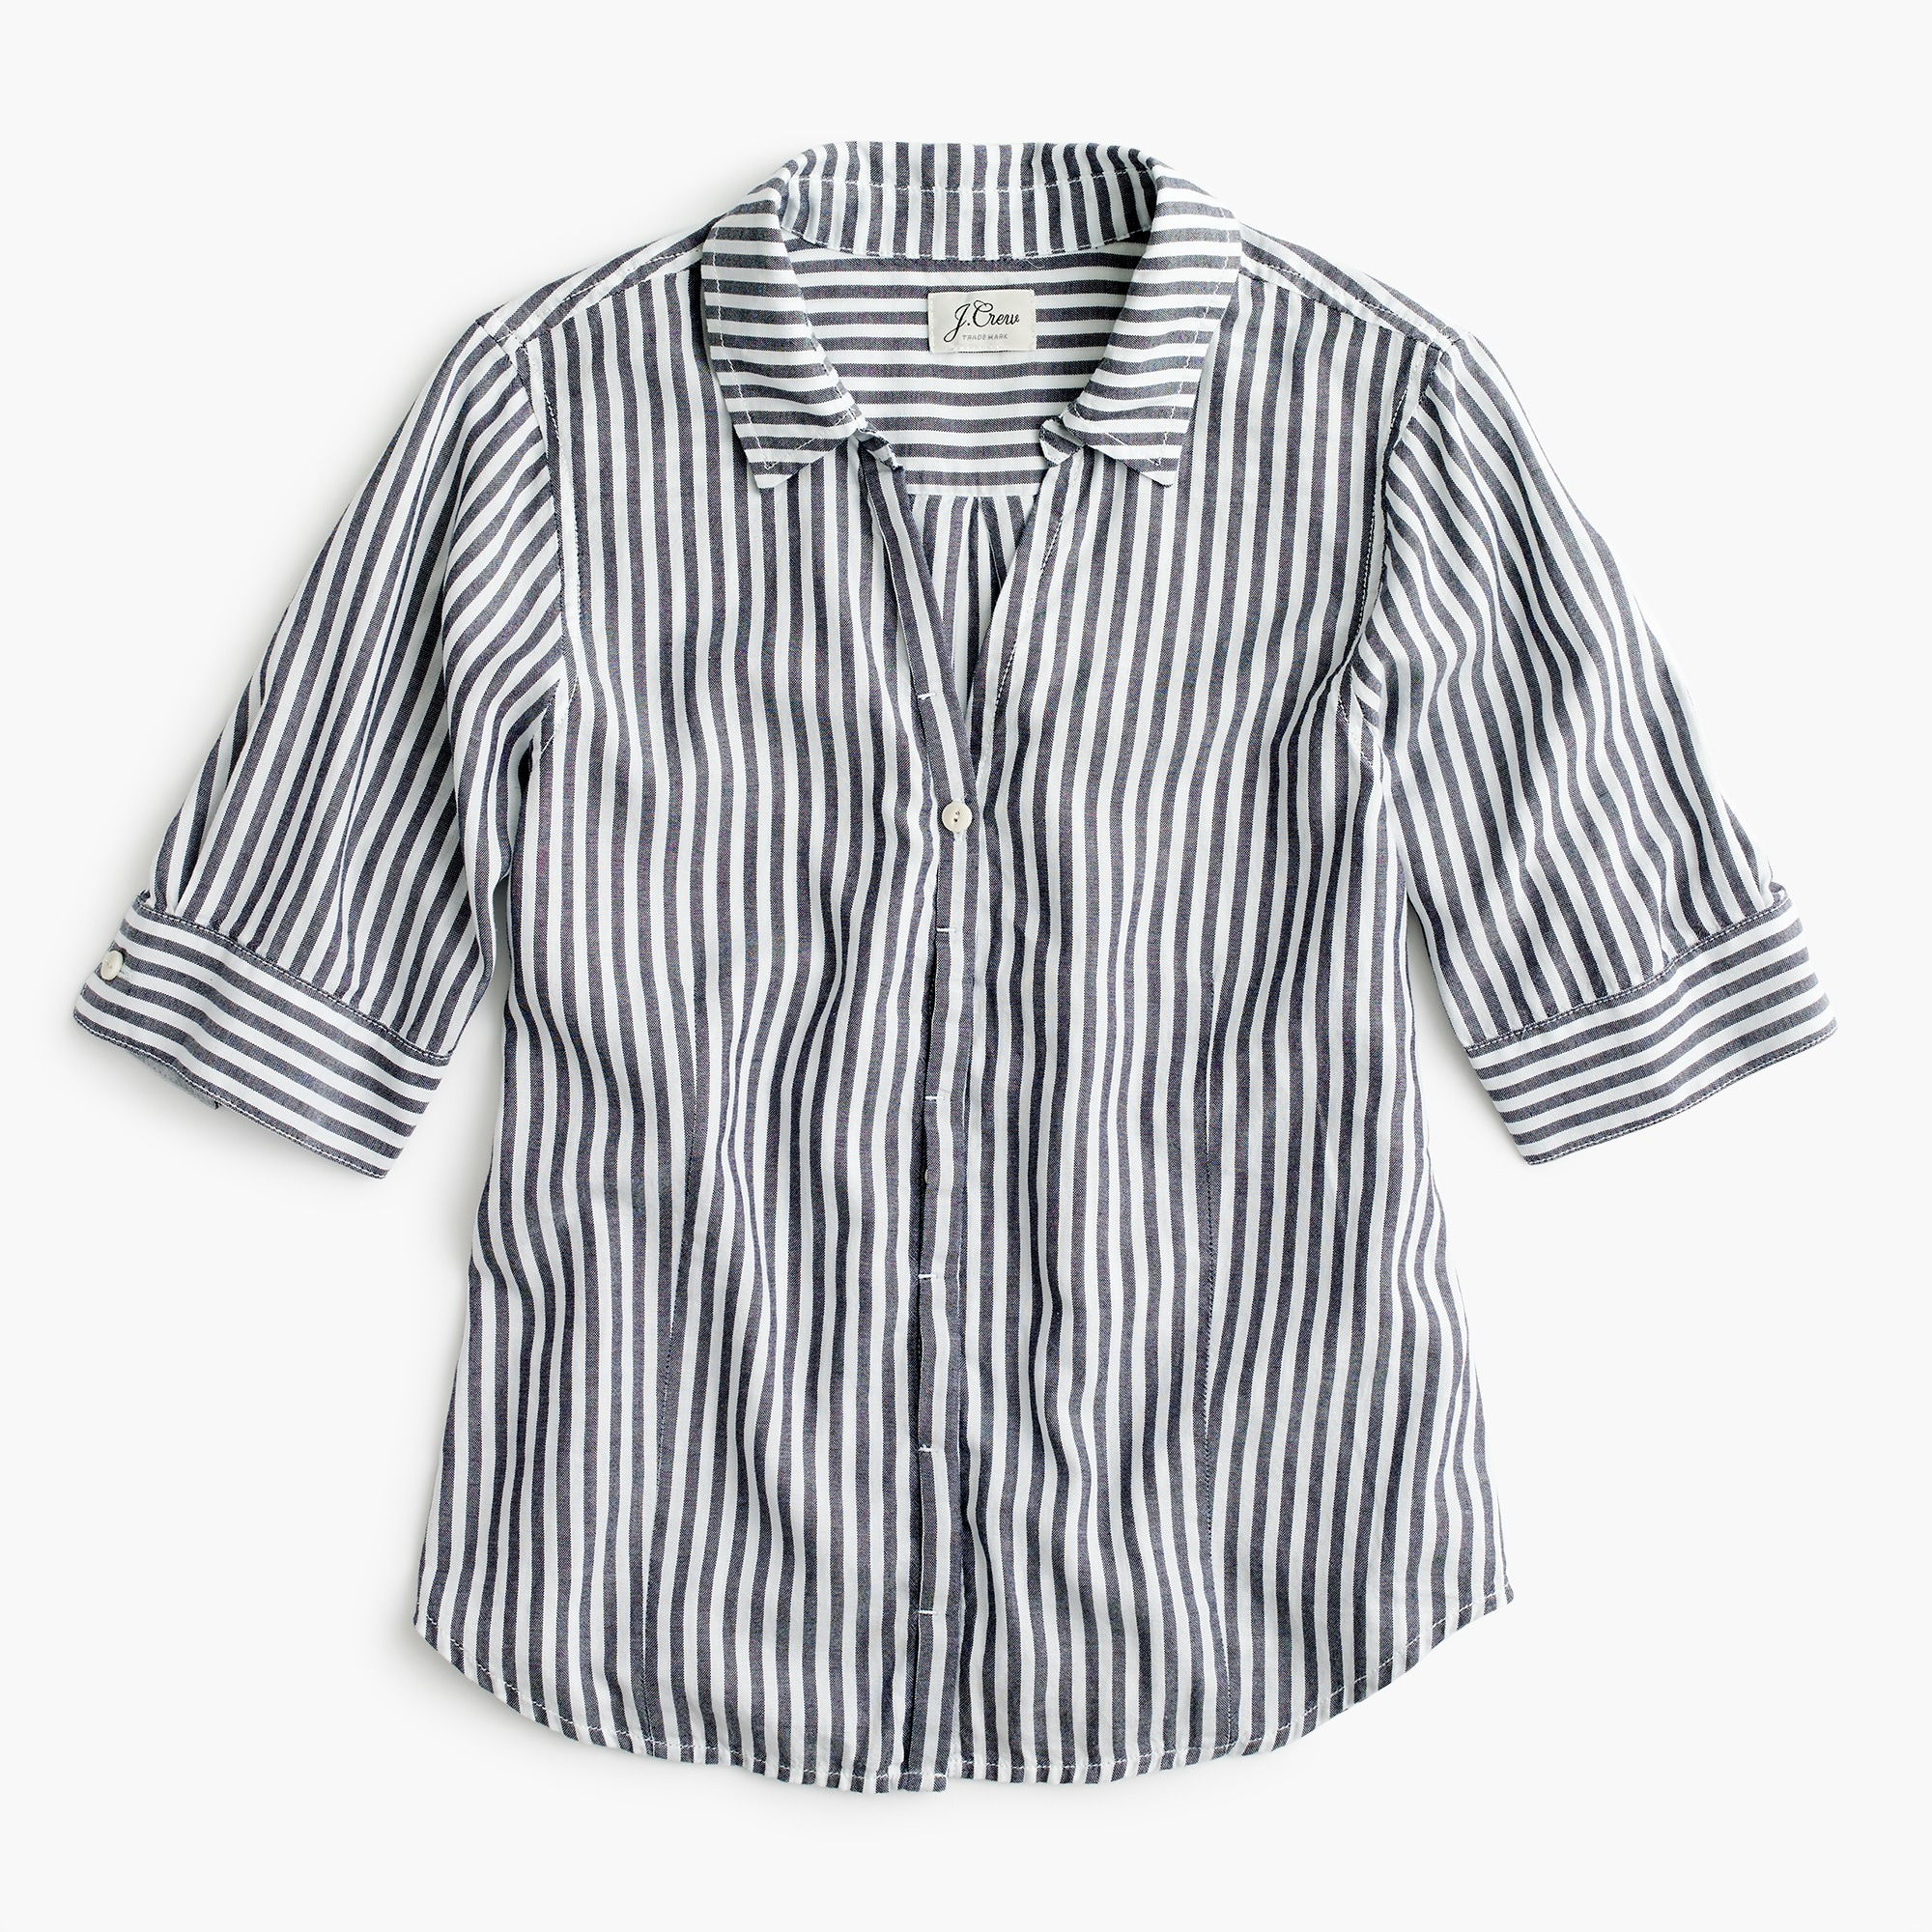 Tall short-sleeve button-up shirt in stripe